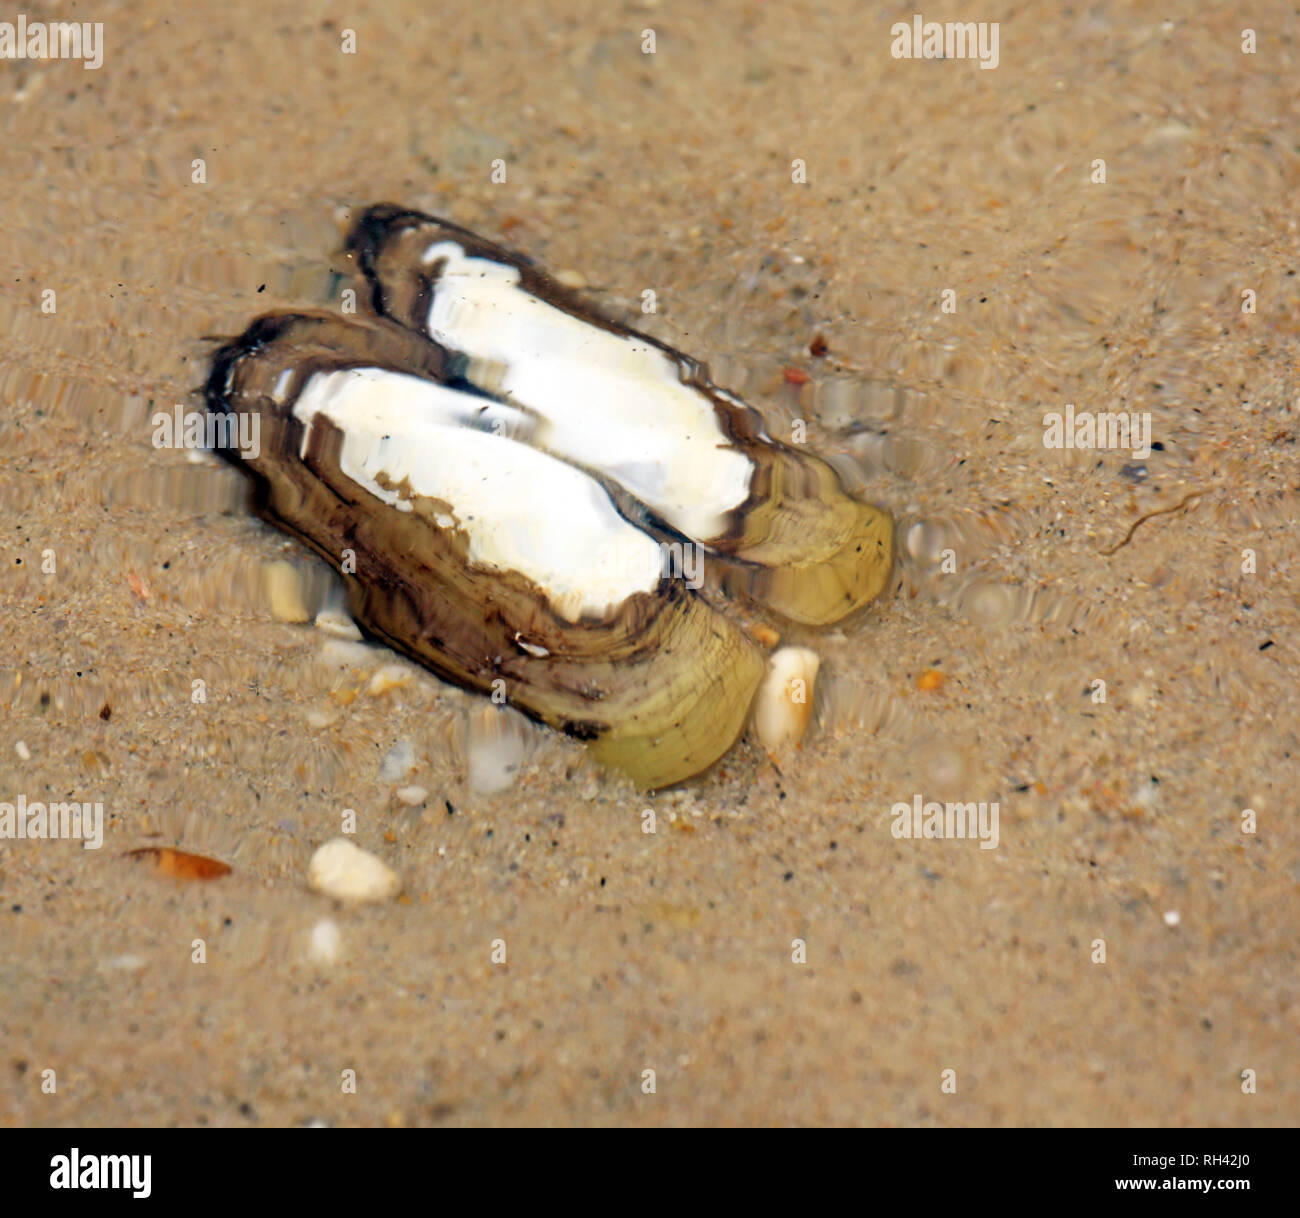 opened dead clam shell on sandy bottom under rippled water - Stock Image